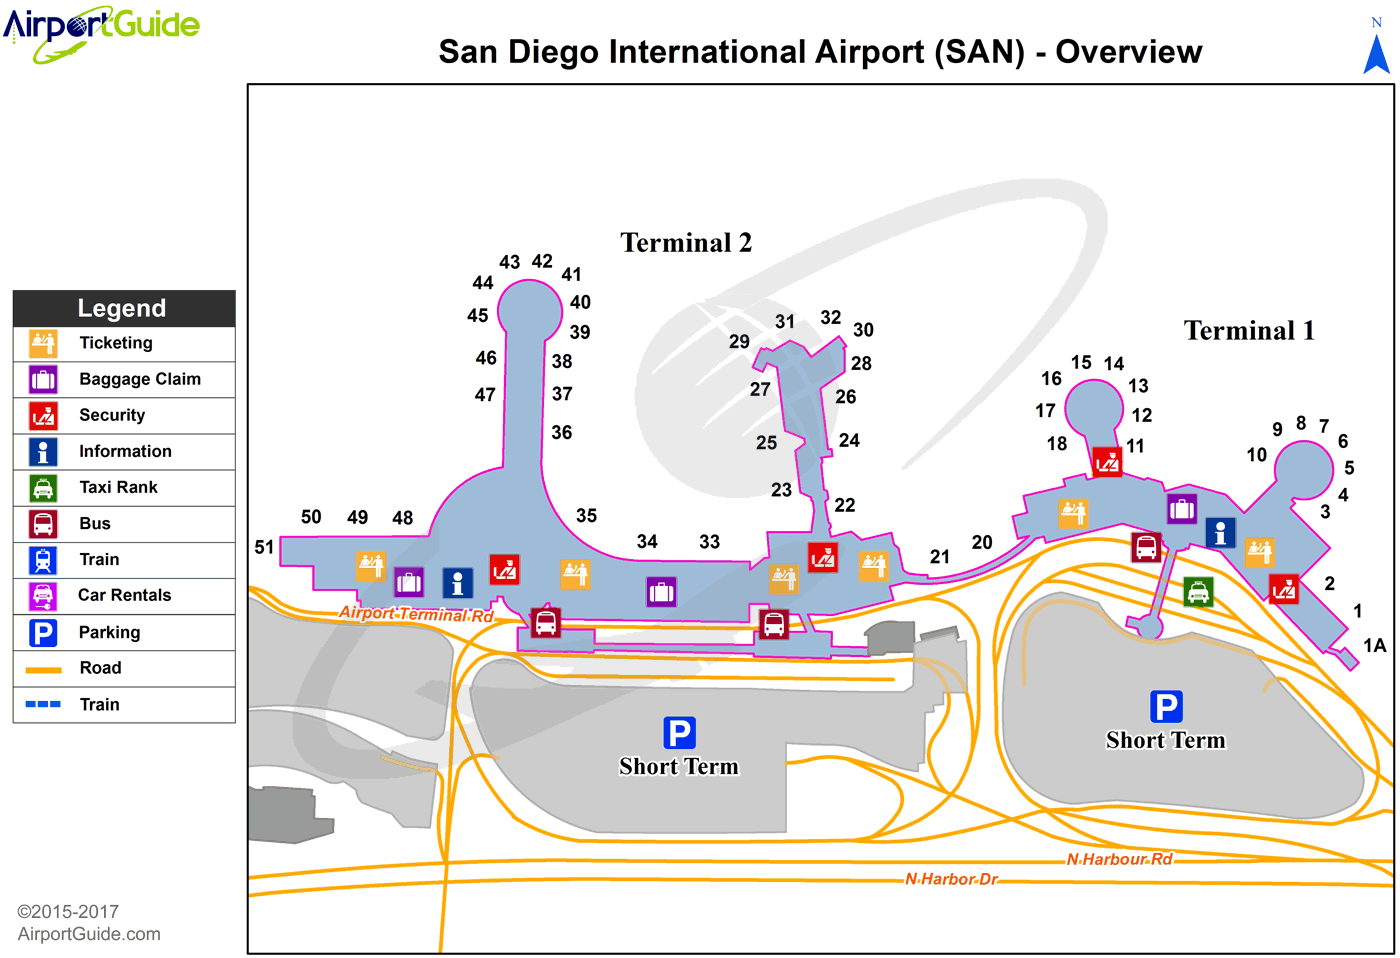 san diego airport rental car map San Diego San Diego International San Airport Terminal Map san diego airport rental car map